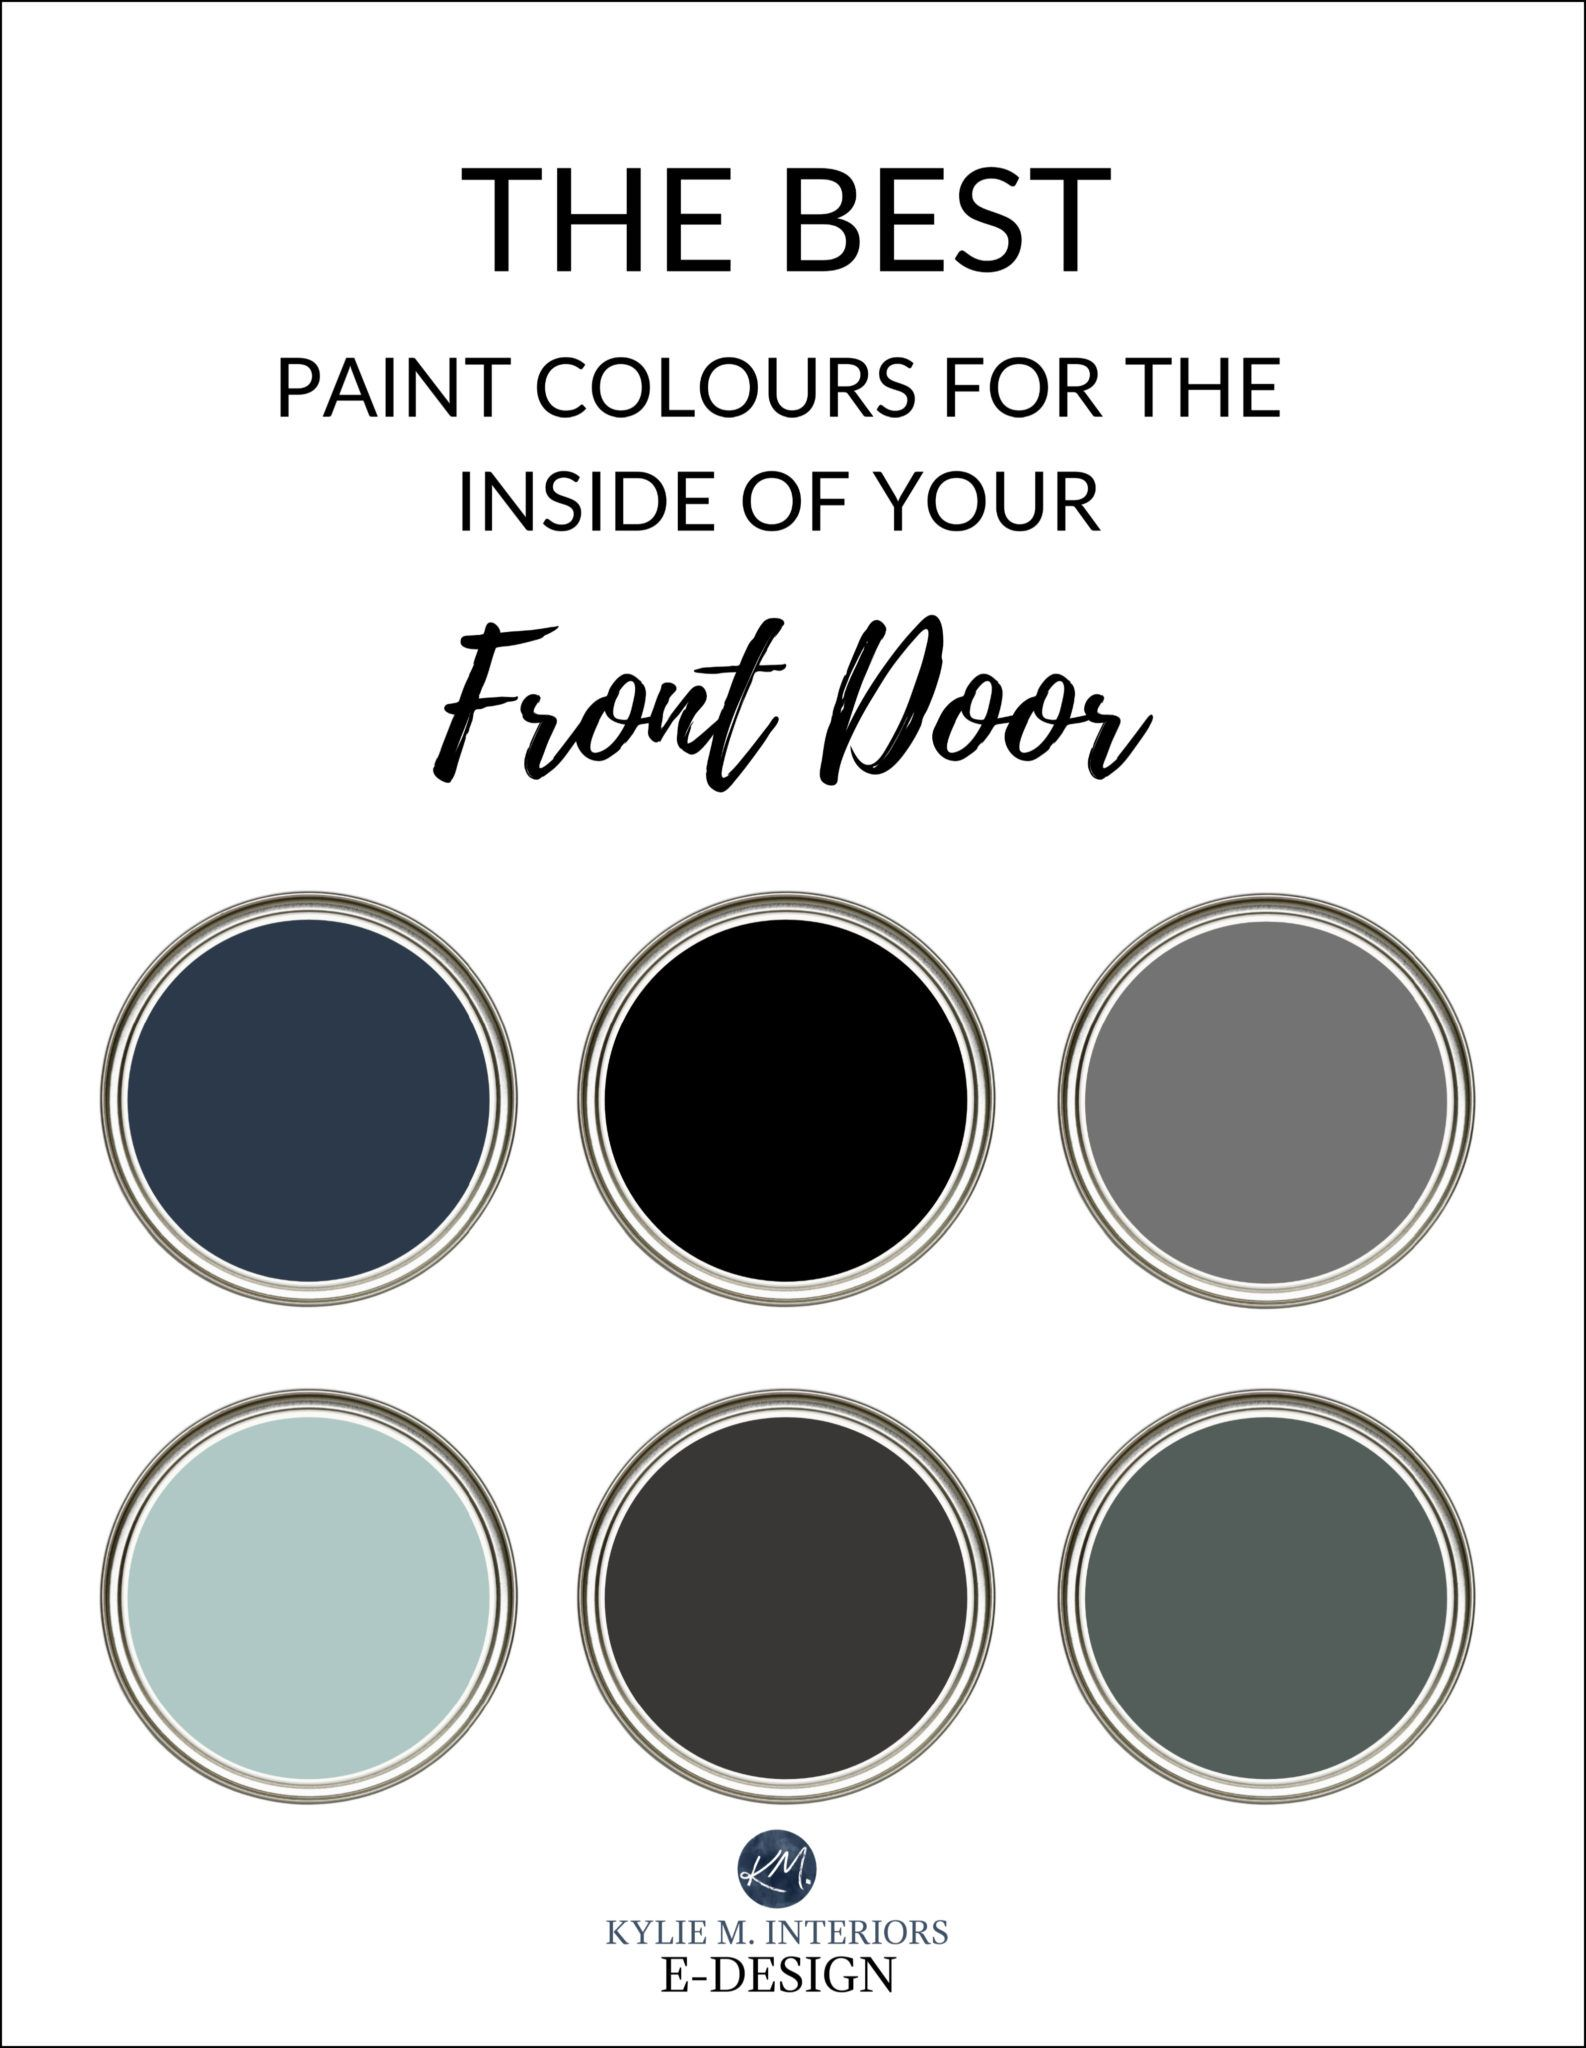 The Best Colours to Paint the Inside of Your Front